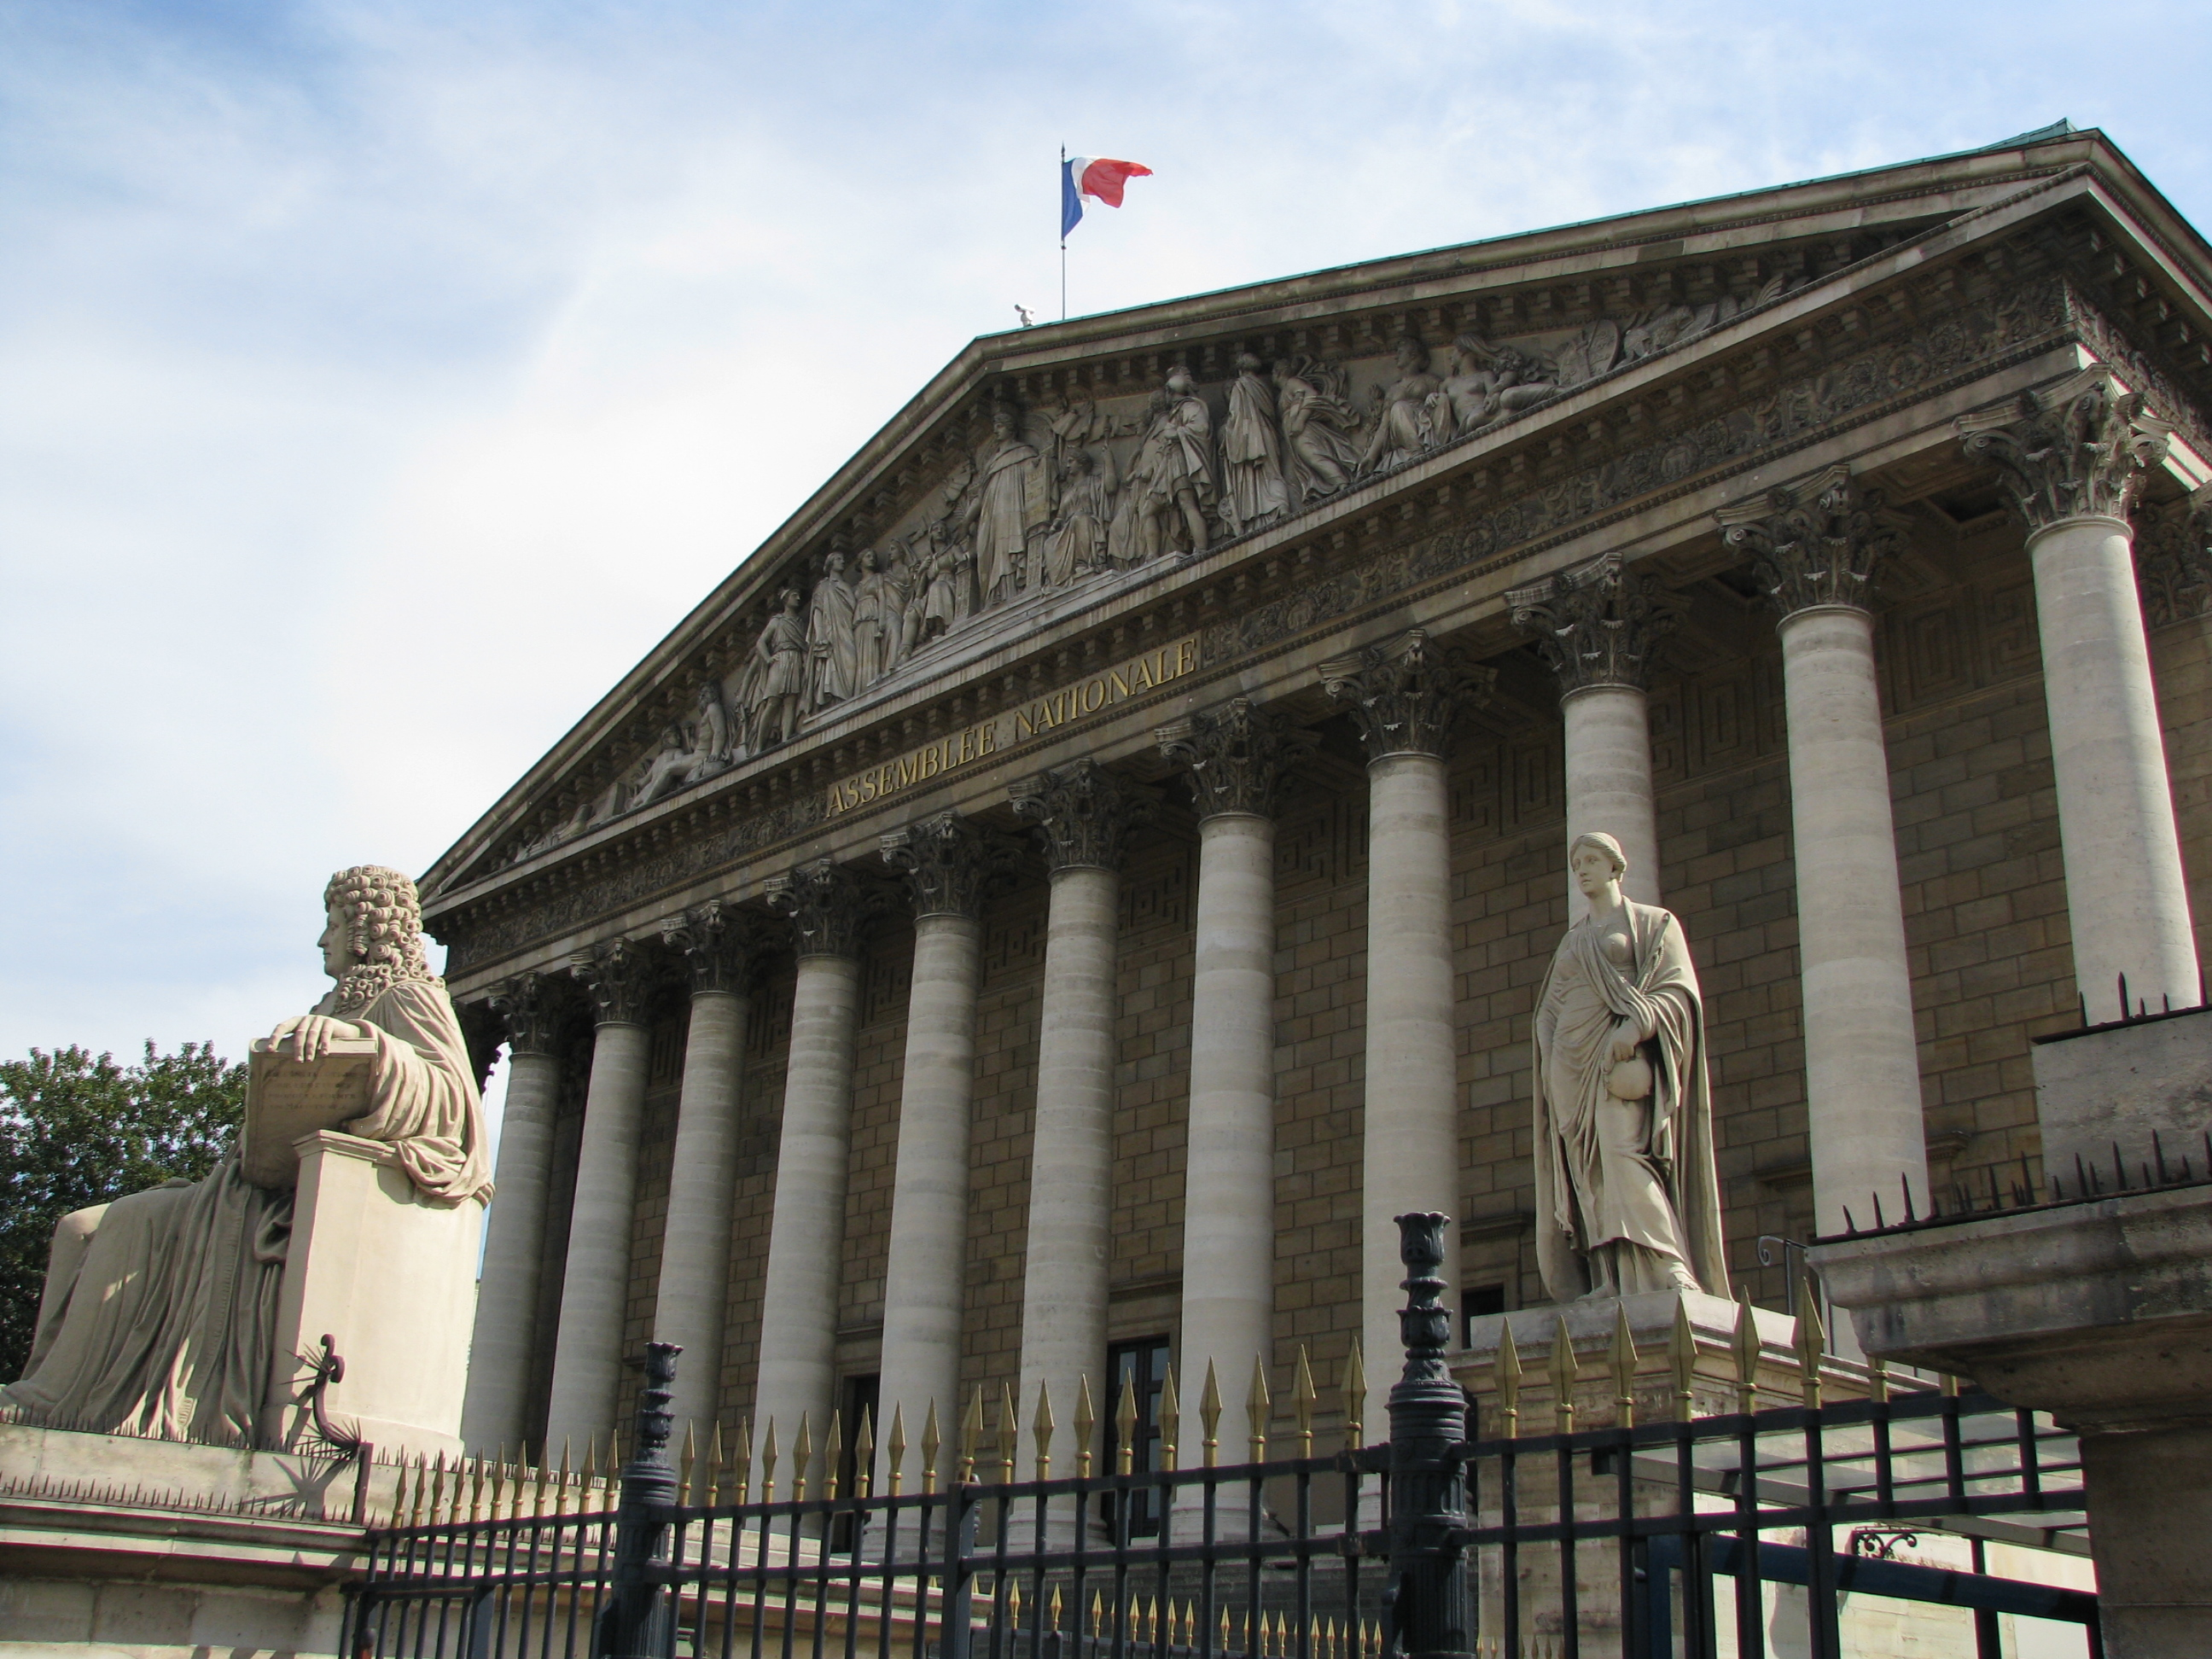 https://upload.wikimedia.org/wikipedia/commons/a/ab/Palais_Bourbon_Assembl%C3%A9e_nationale.JPG